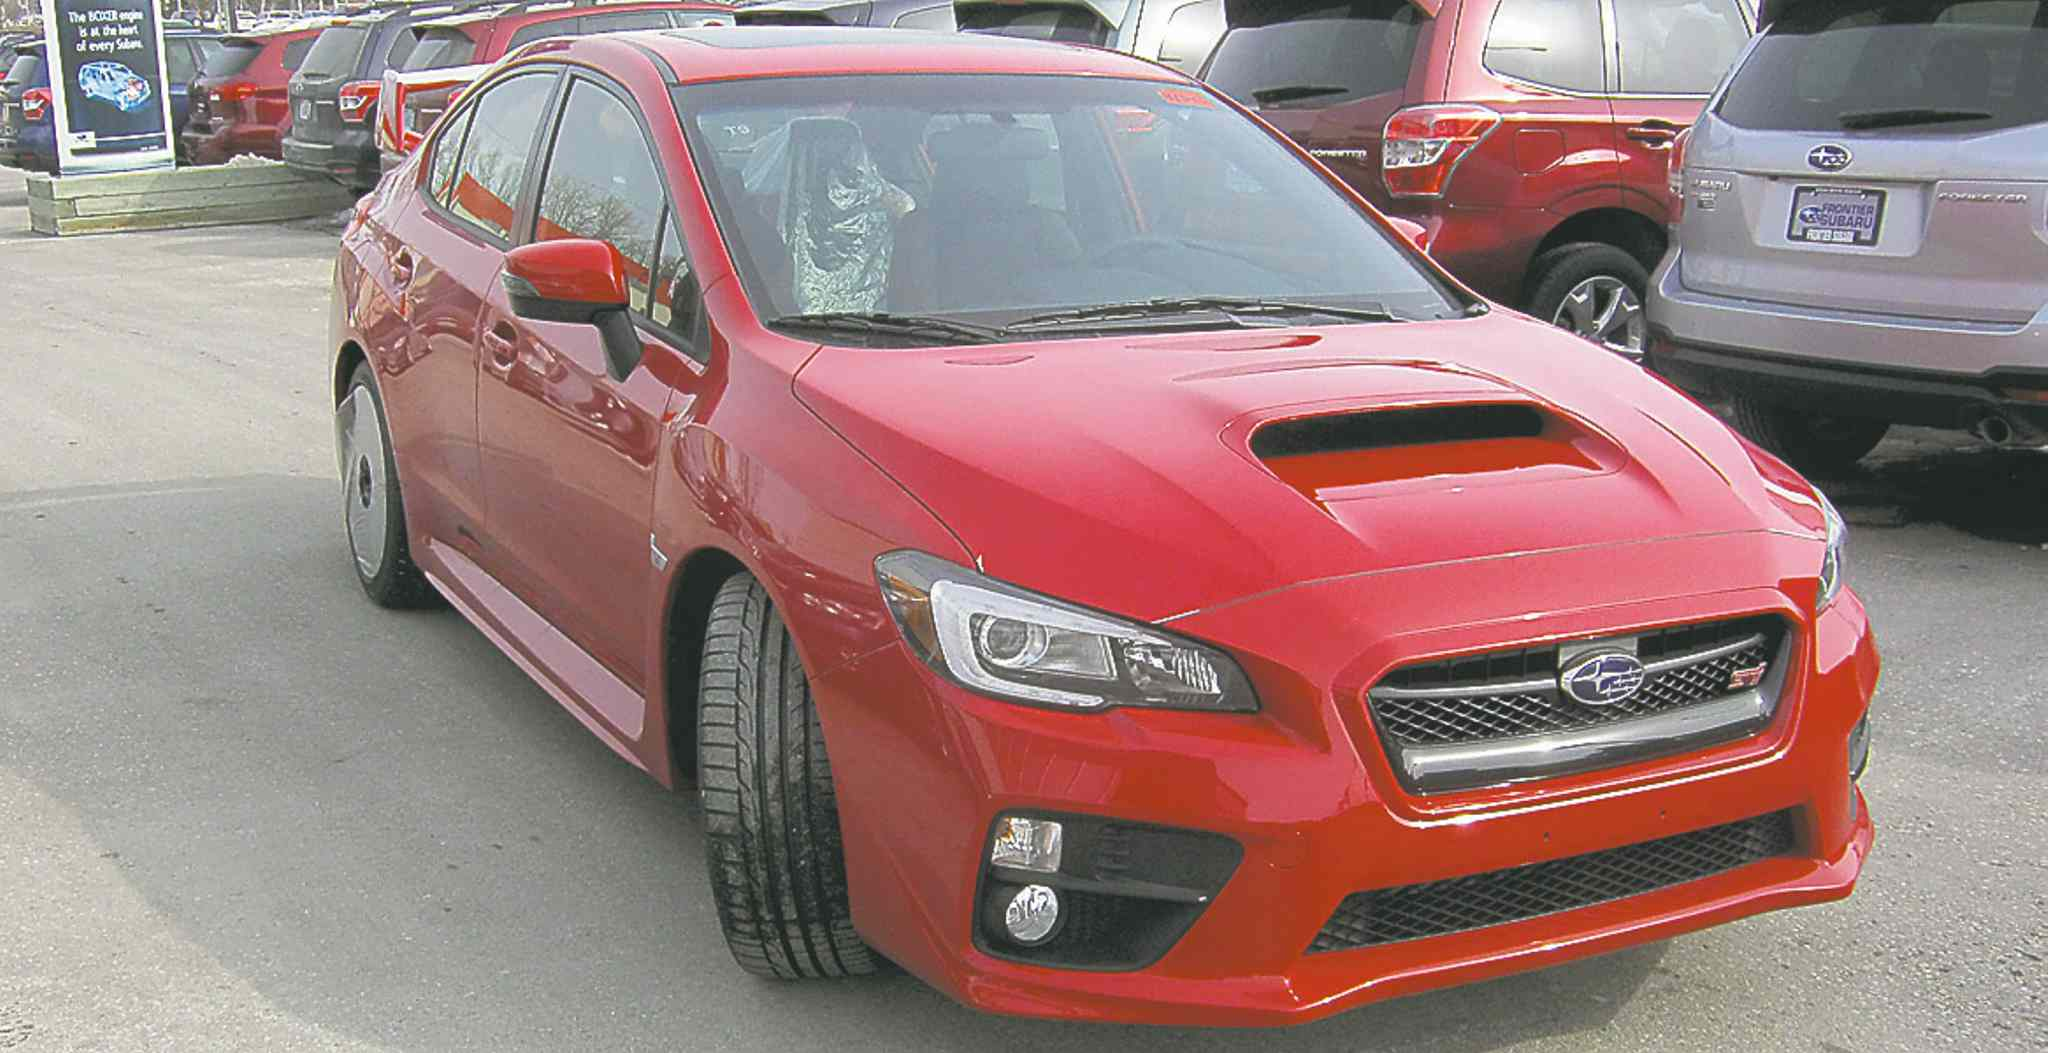 The 2015 WRX STI offers standard features that include push-button start and a back-up camera.